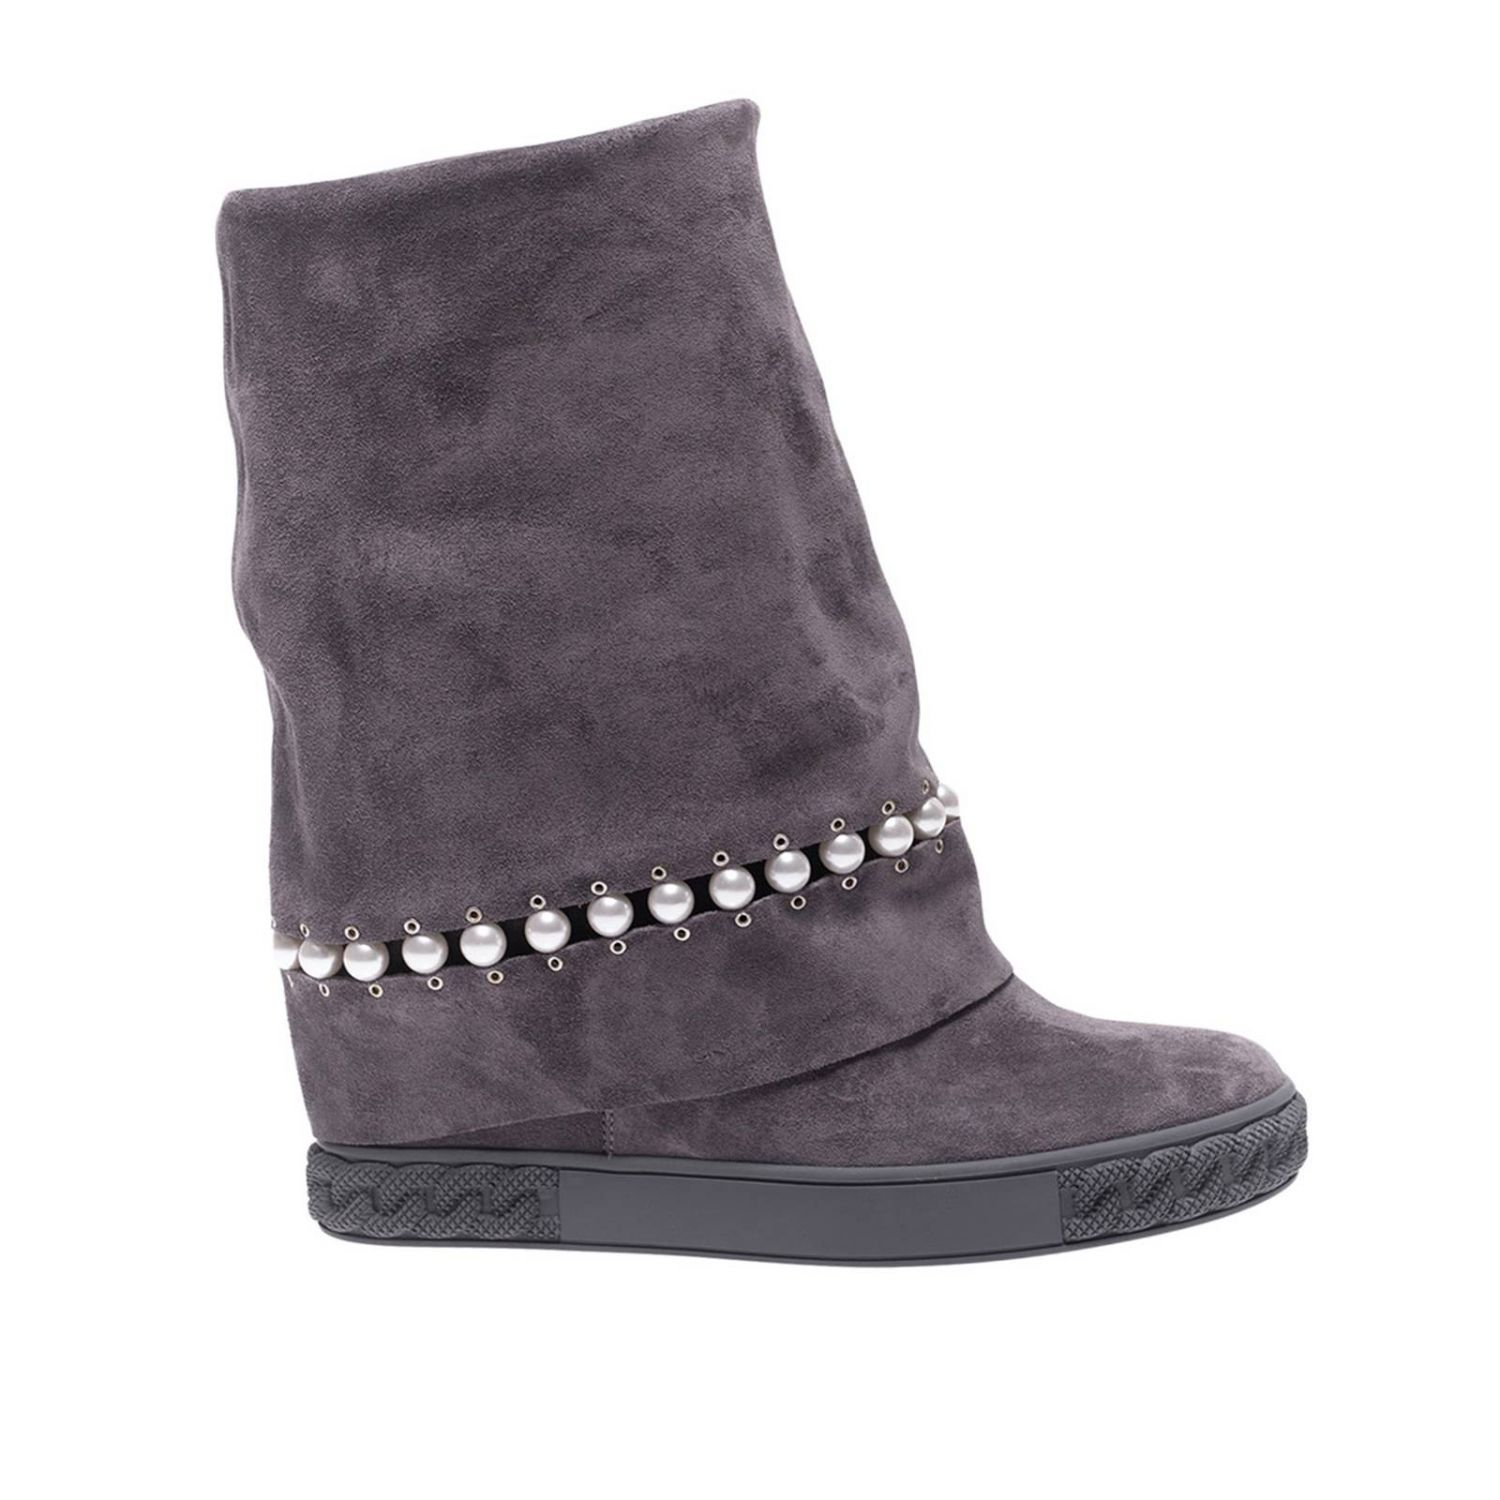 Shoes women Casadei grey 1